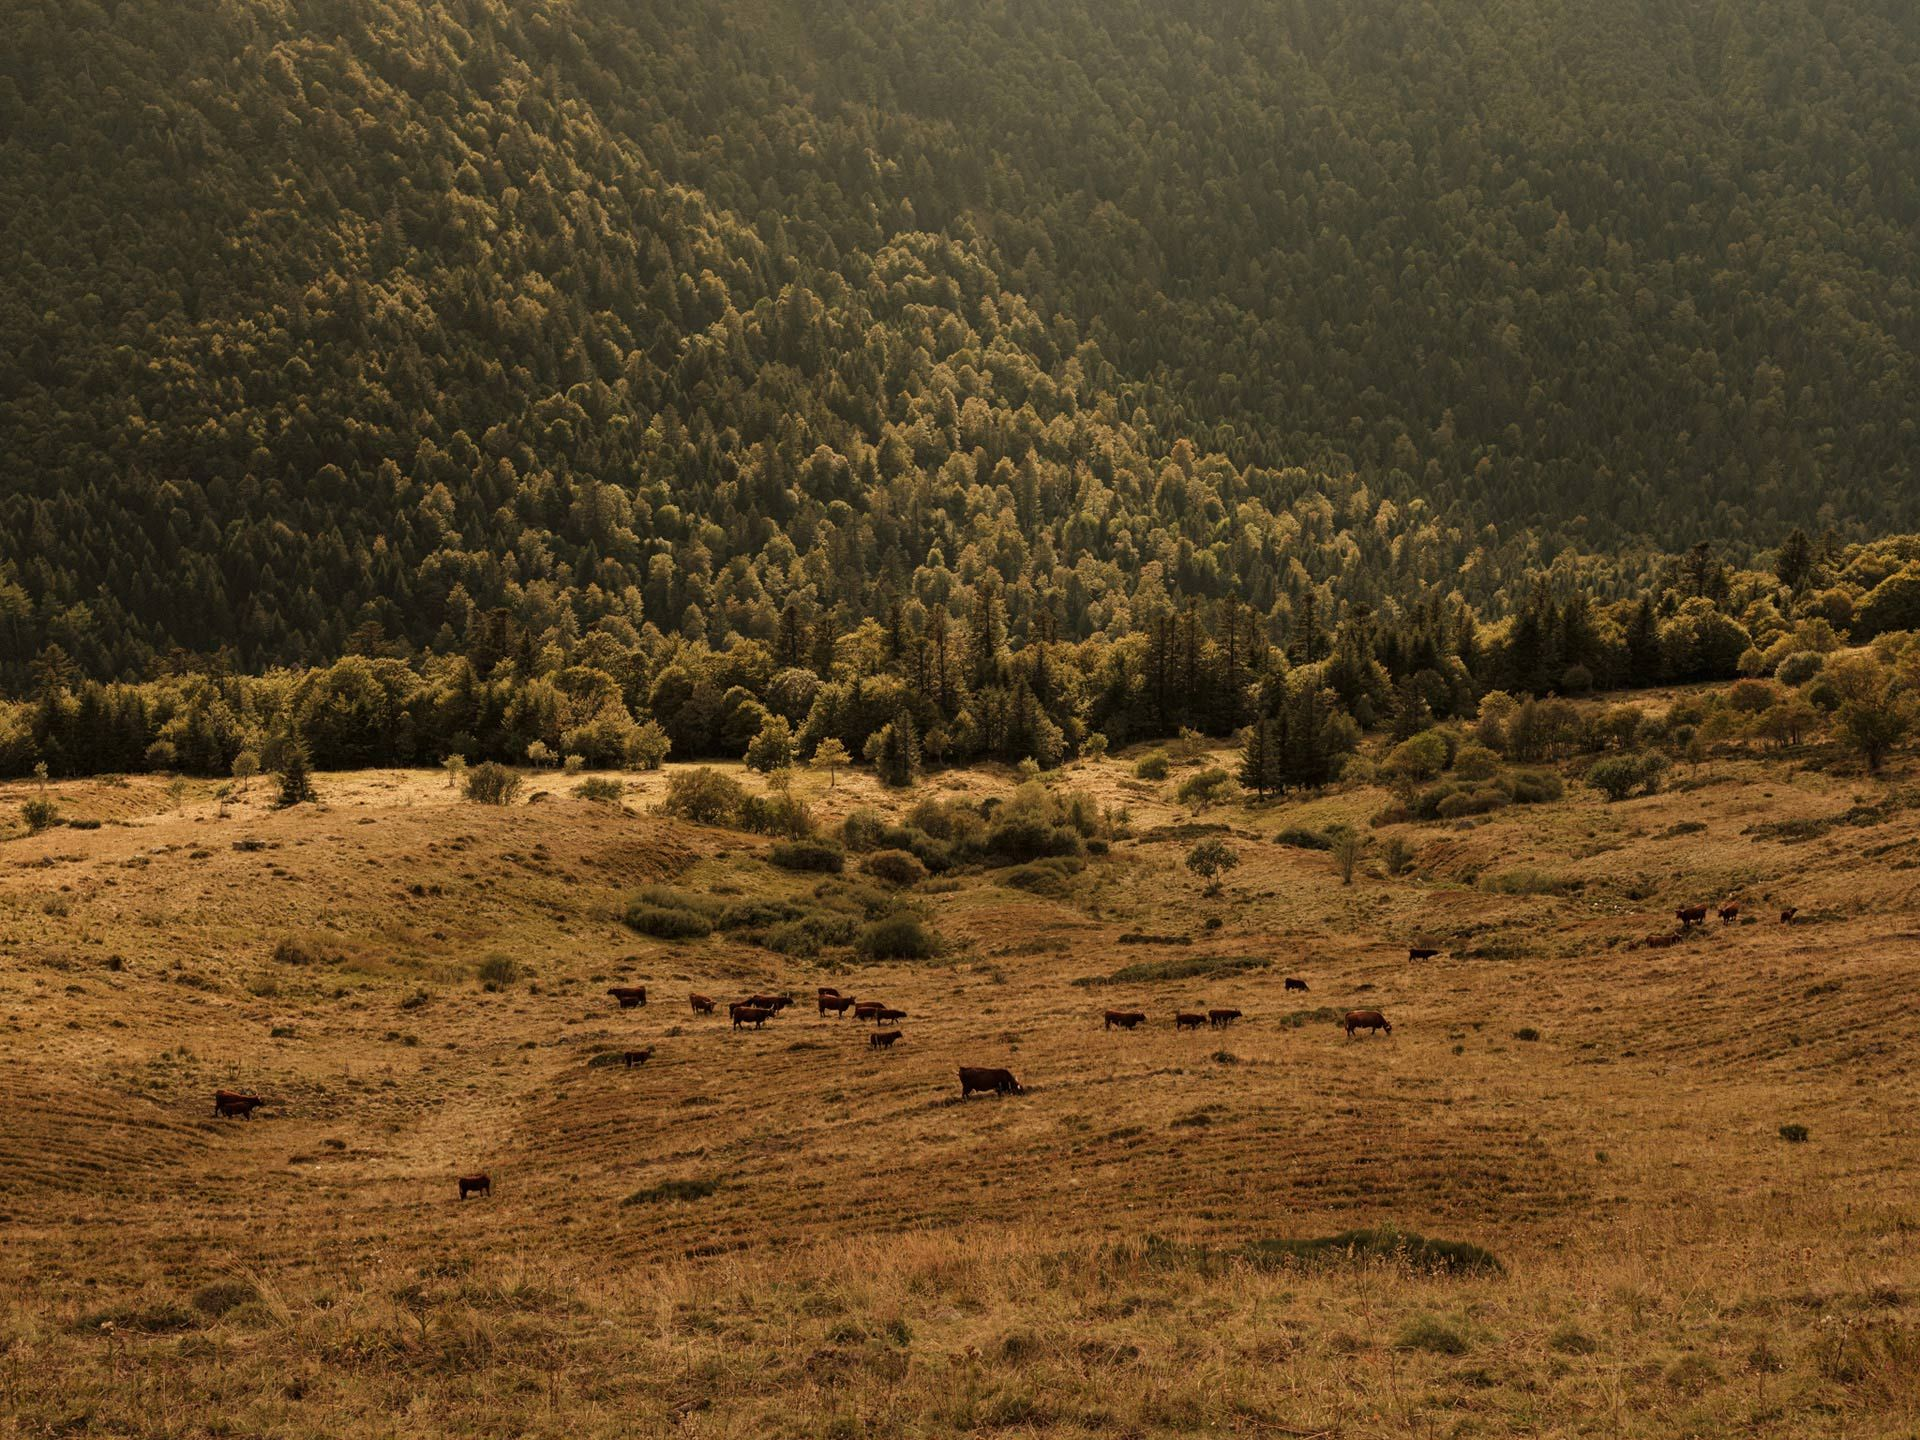 wide view of mountain foot field with cows in it by Alexi Hobbs in Auvergne for Reflets de France